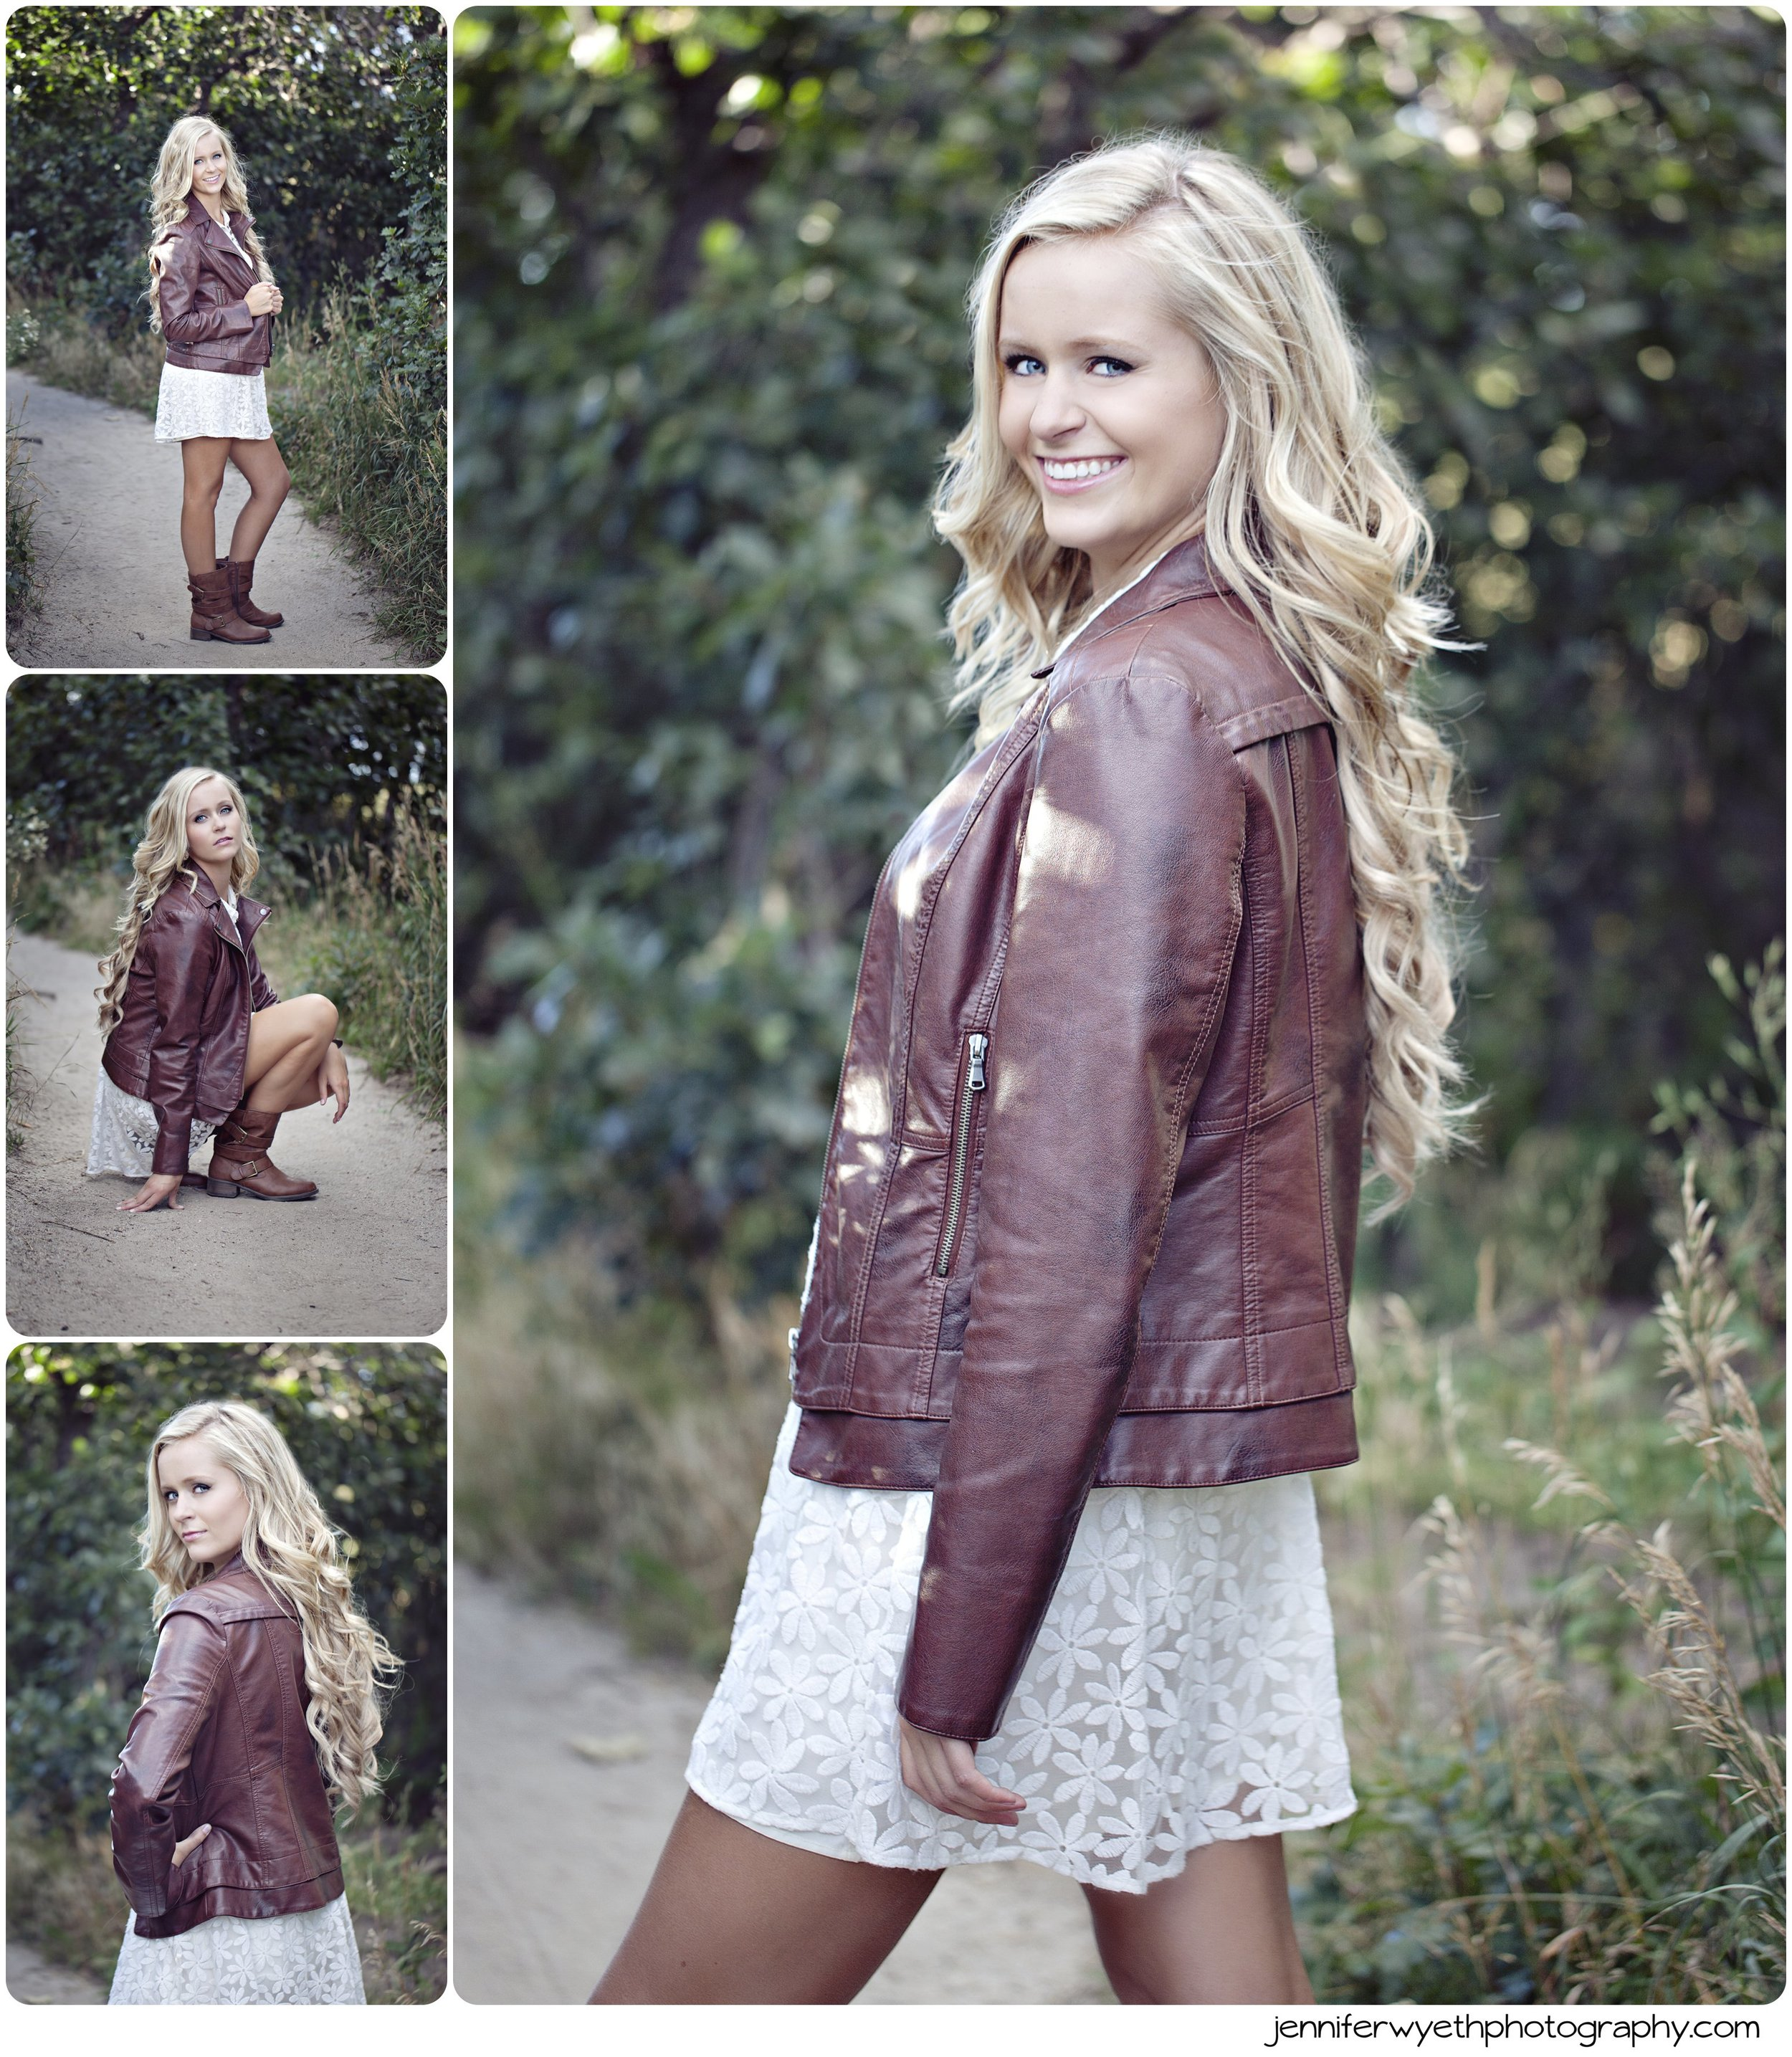 brown leather jacket accents white lace dress in senior pictures